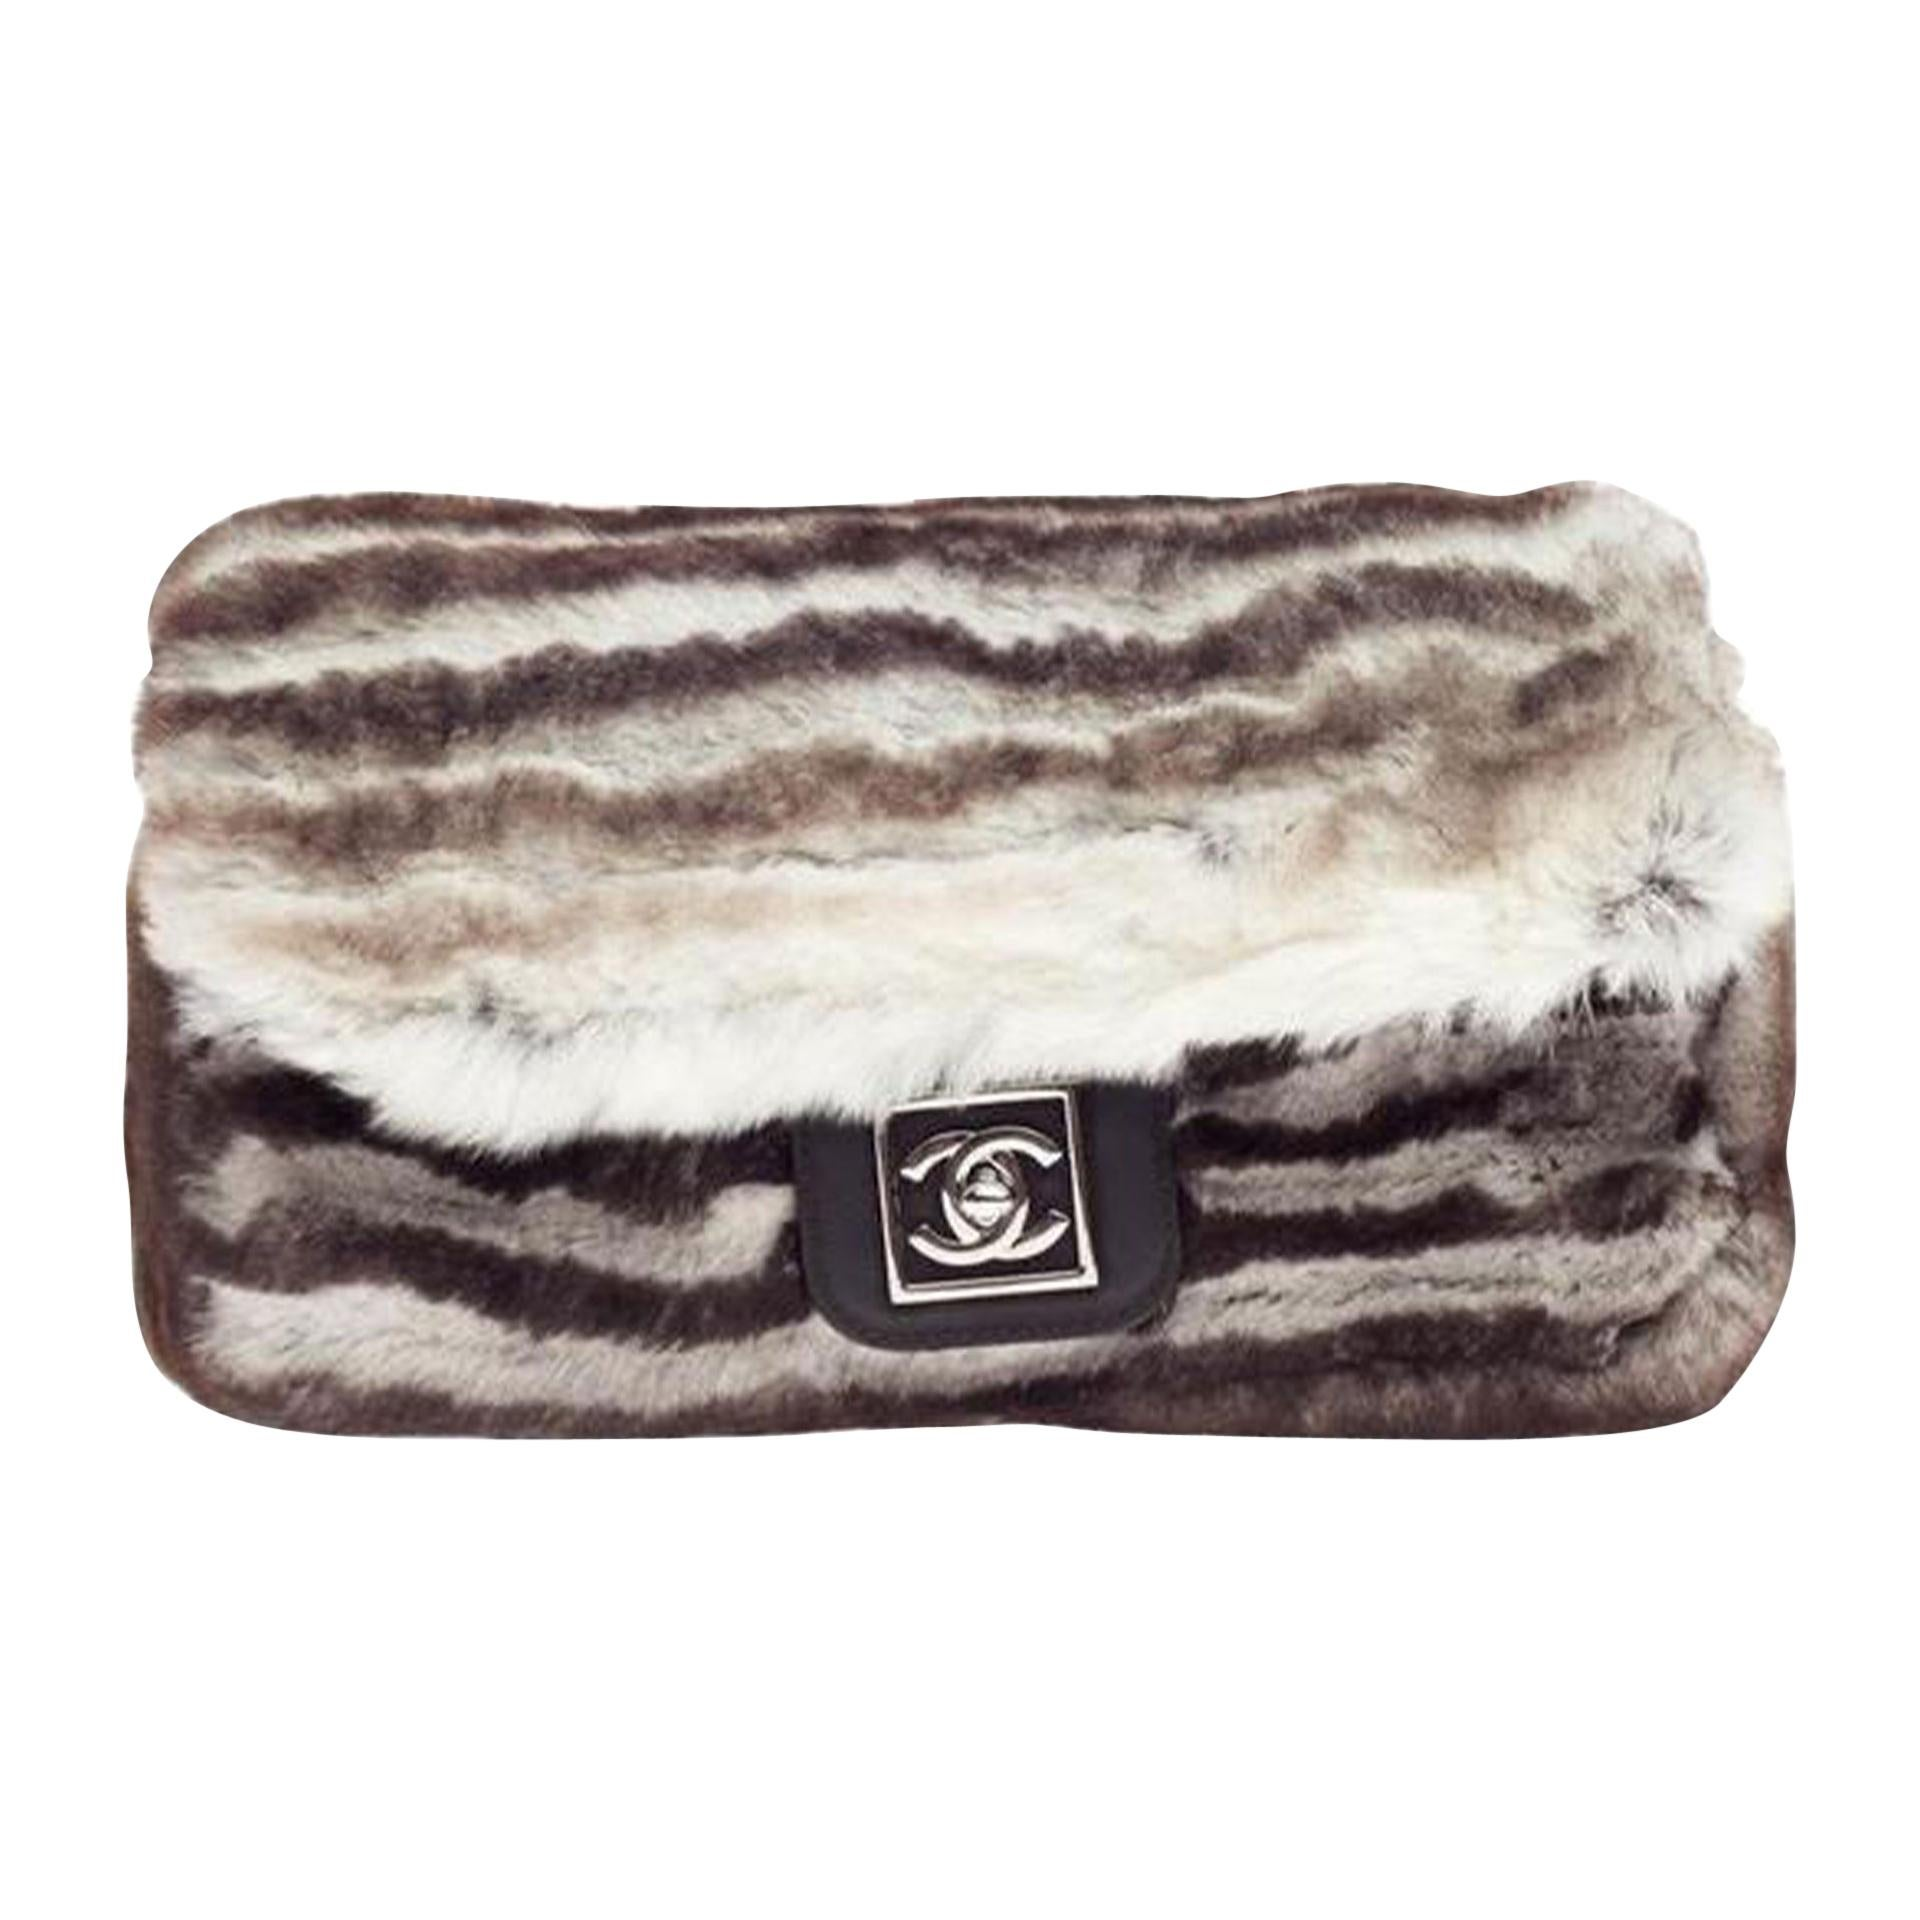 Chanel white grey and brown rabbit fur waist belt flap fanny pack